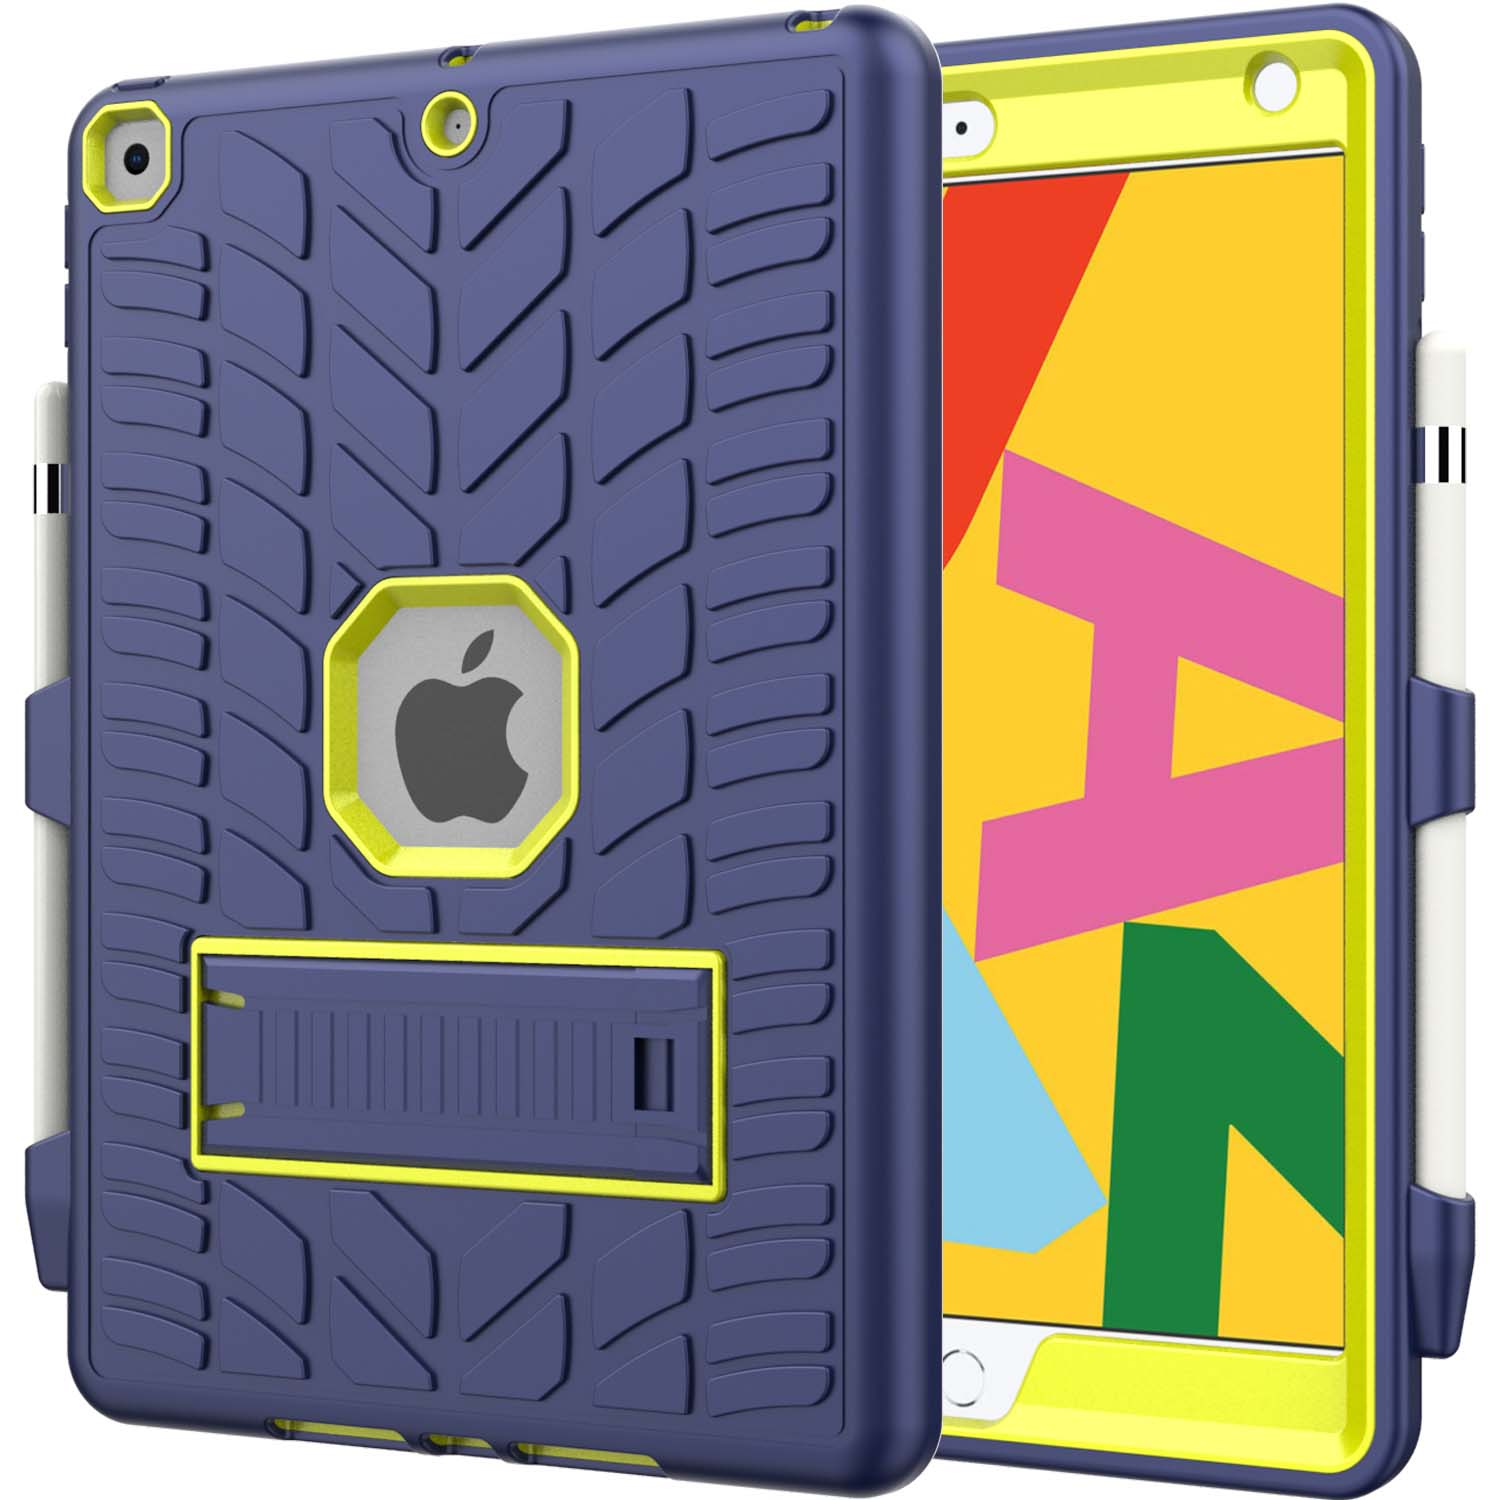 2 Blue For iPad 8th Generation 10 2 Case 2020 with Pencil Holder Tire Pattern Shockproof Hard PC